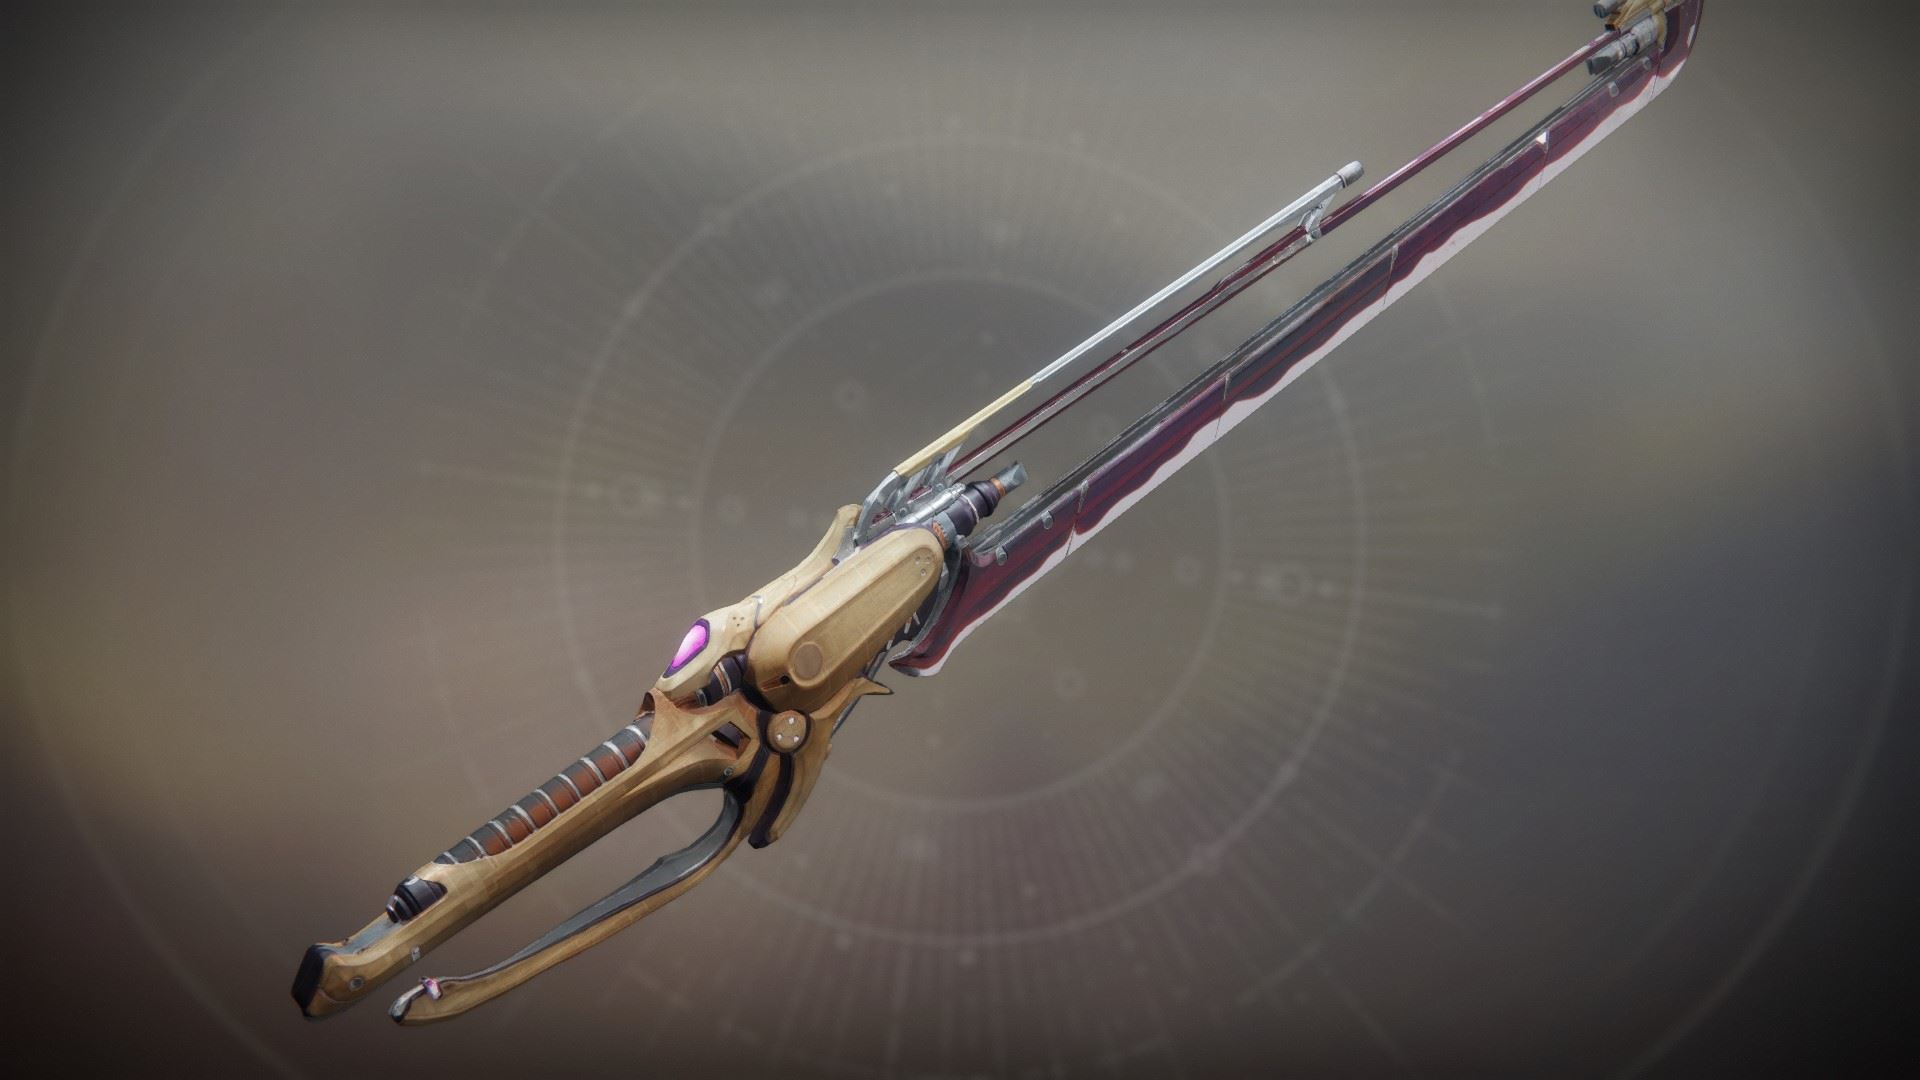 Warmind Release Ishtar Collective Destiny Lore By Subject Just keep playing the game in various activities. warmind release ishtar collective destiny lore by subject